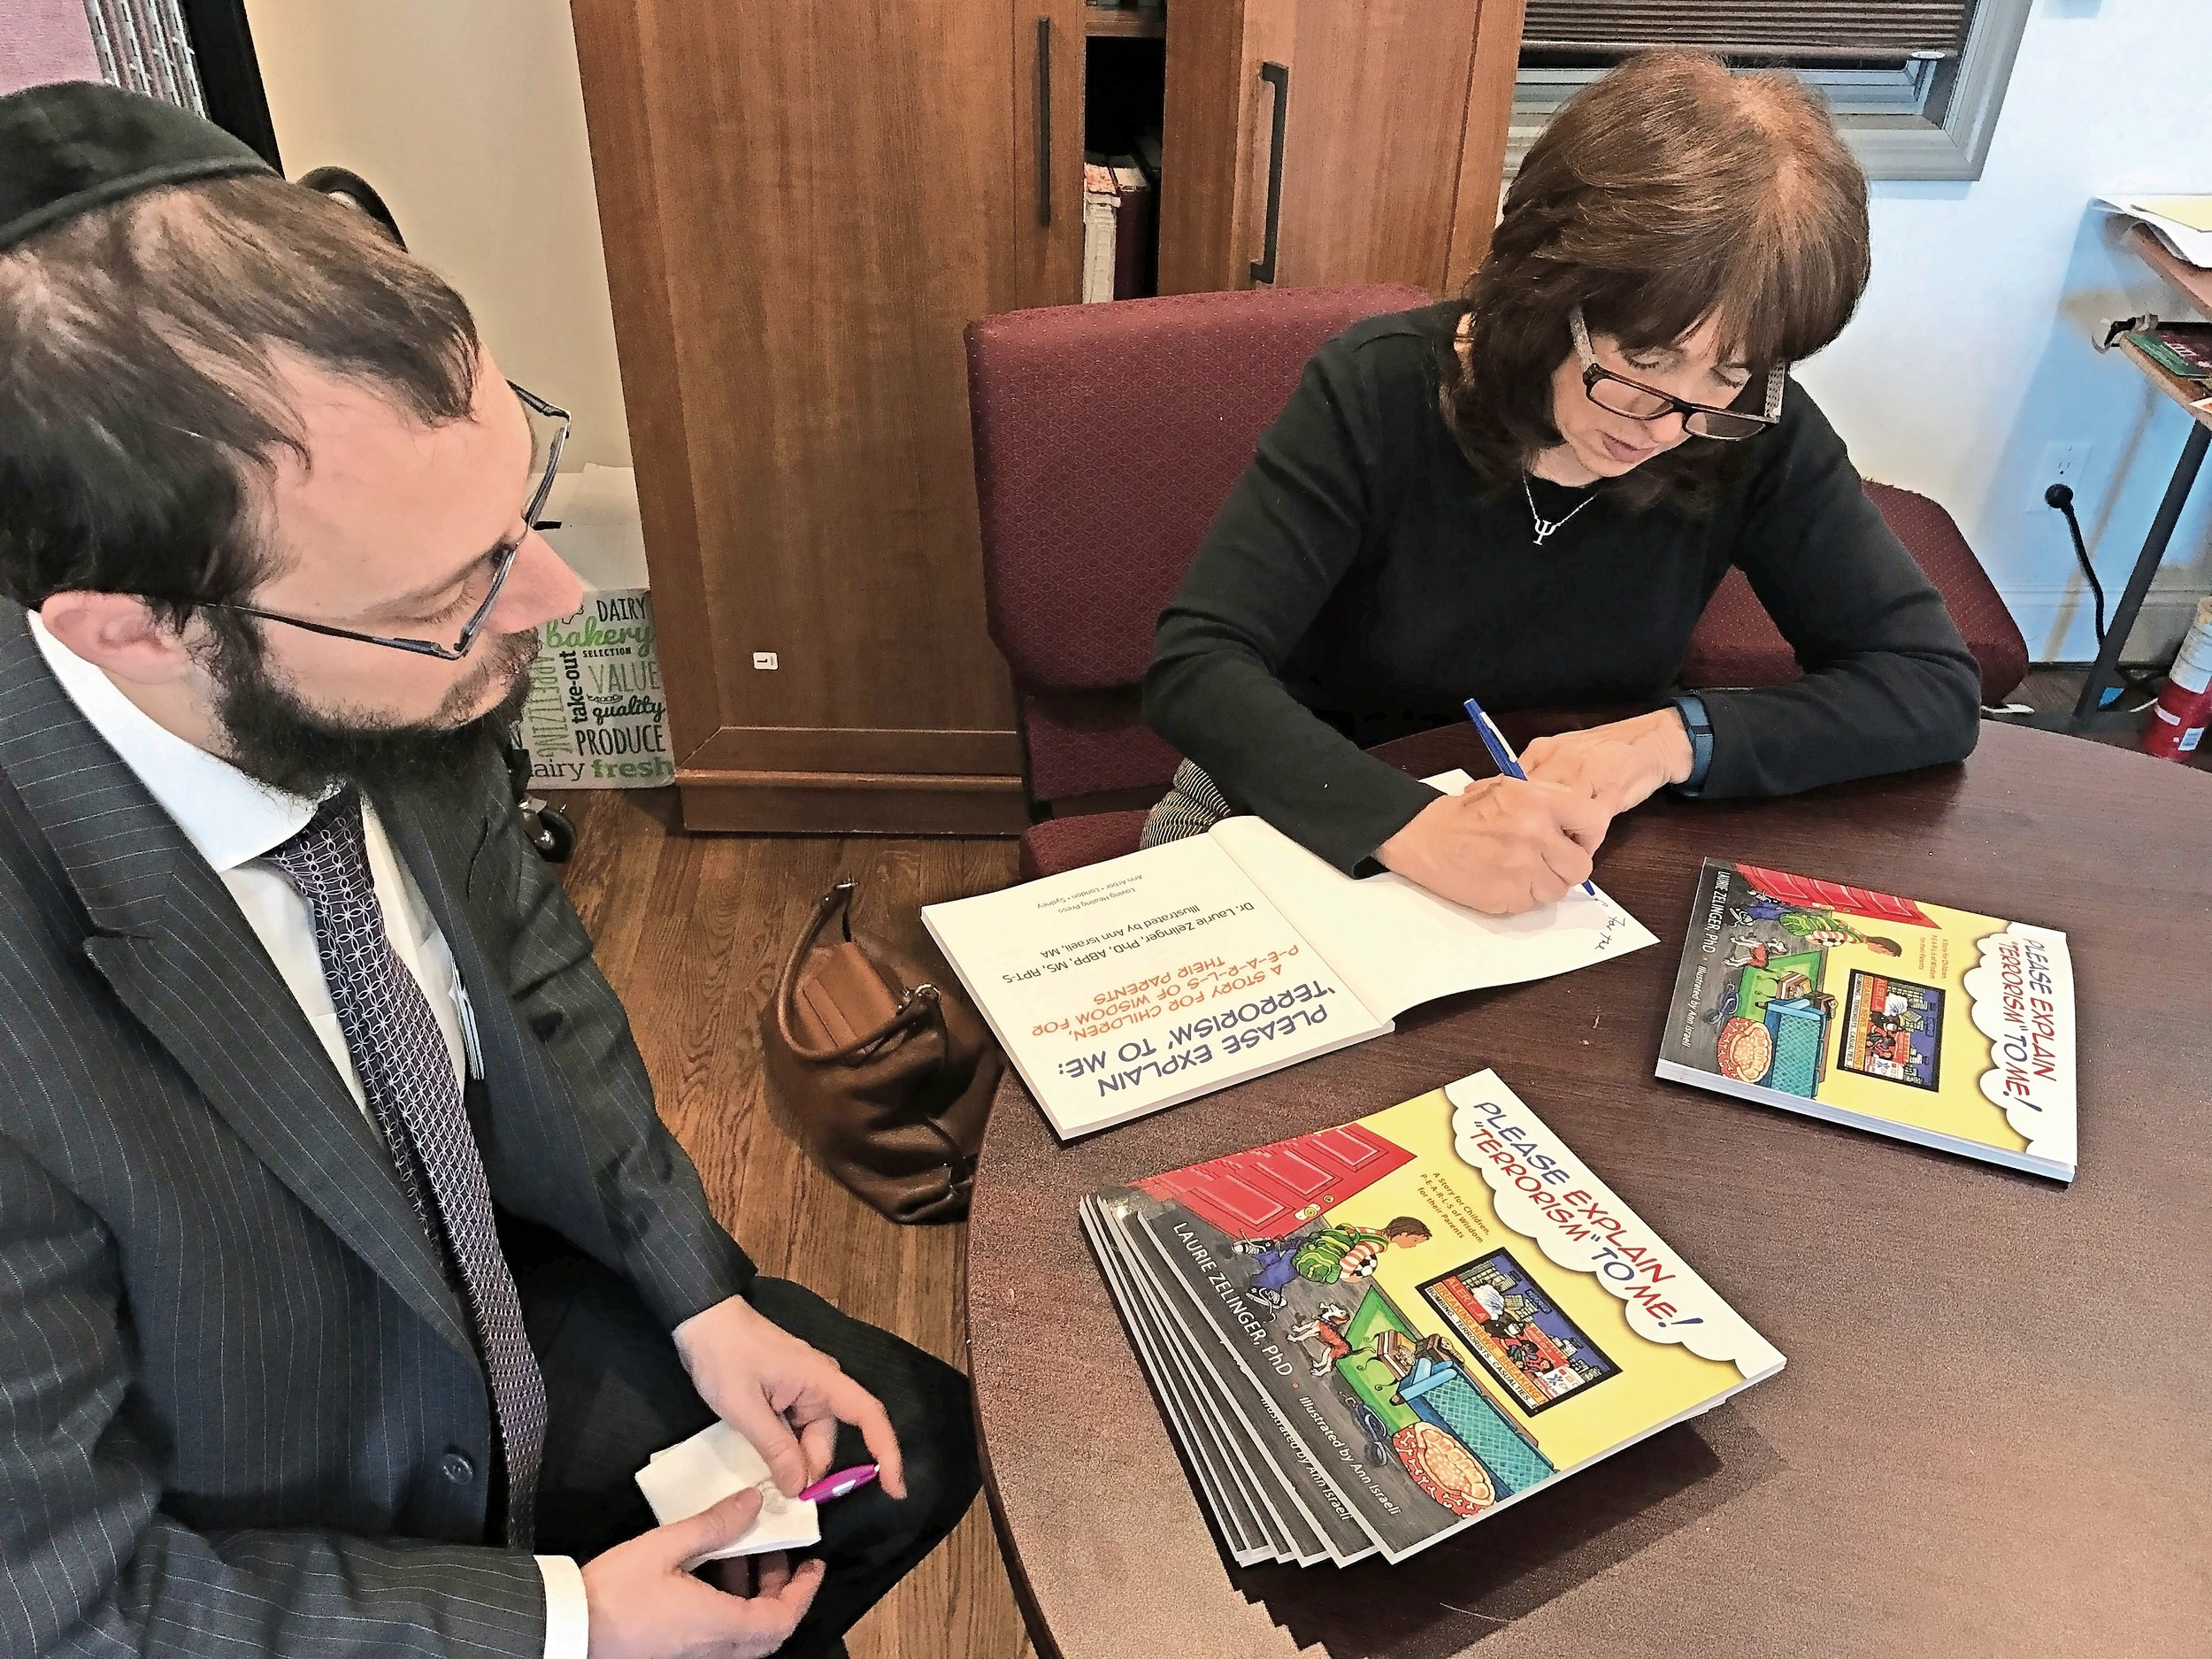 Dr. Laurie Zelinger, an author and child psychologist from Cedarhurst, signed the copies of her books that will be delivered to Israel this week. At left was Rabbi Nochem Tenenboim.